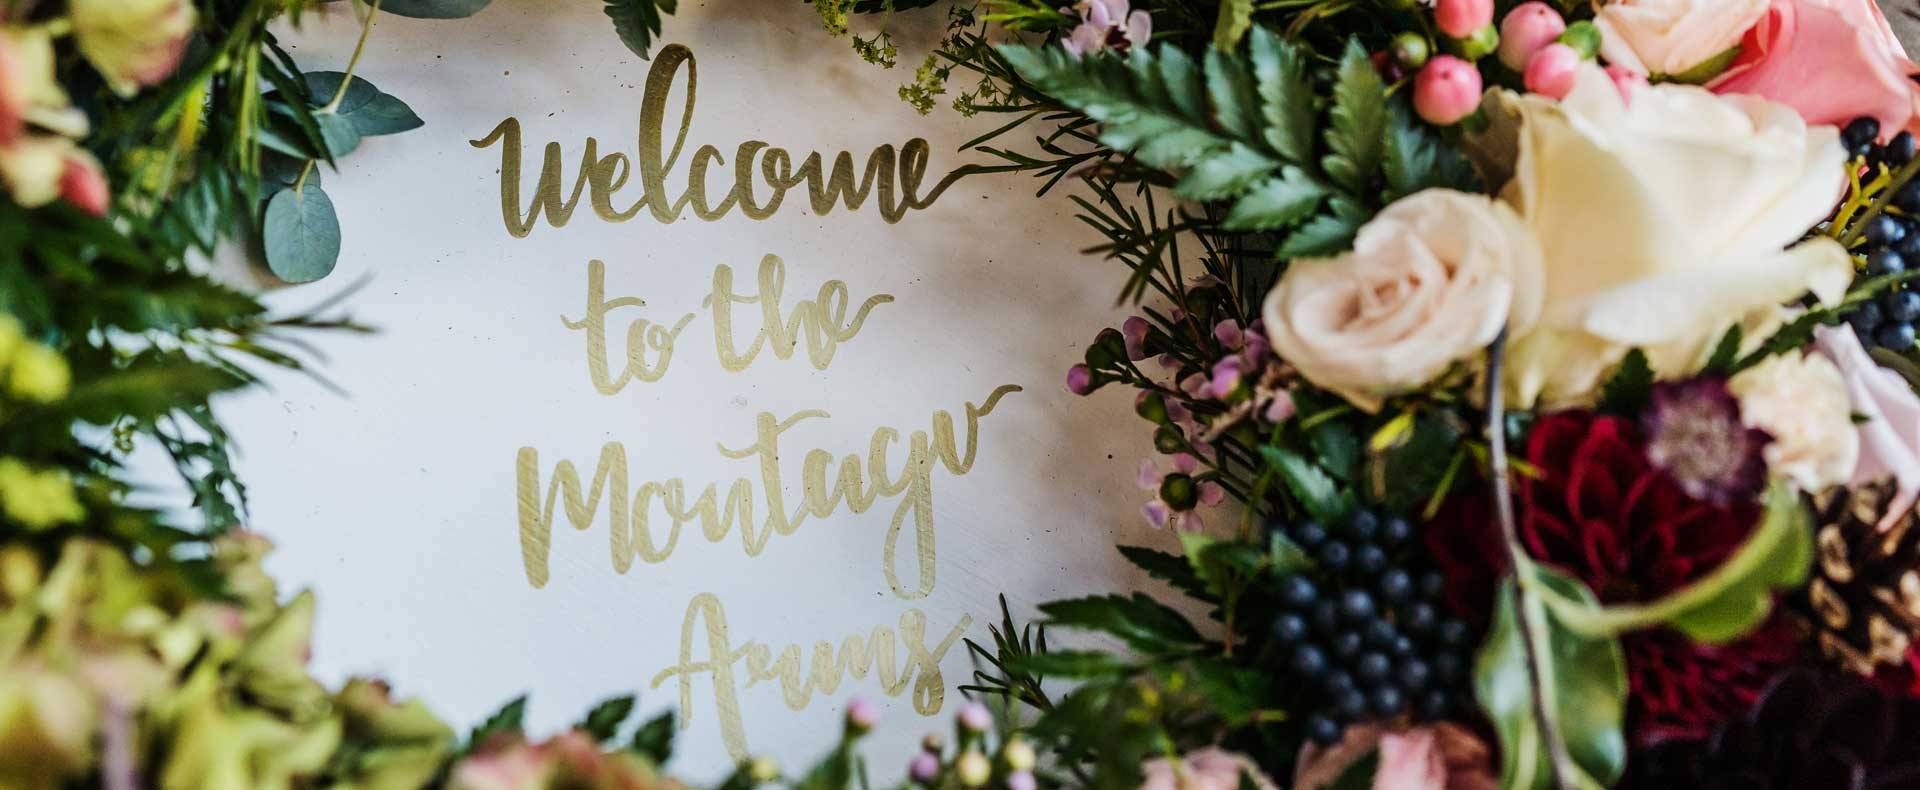 wedding_entrance_floral_sign